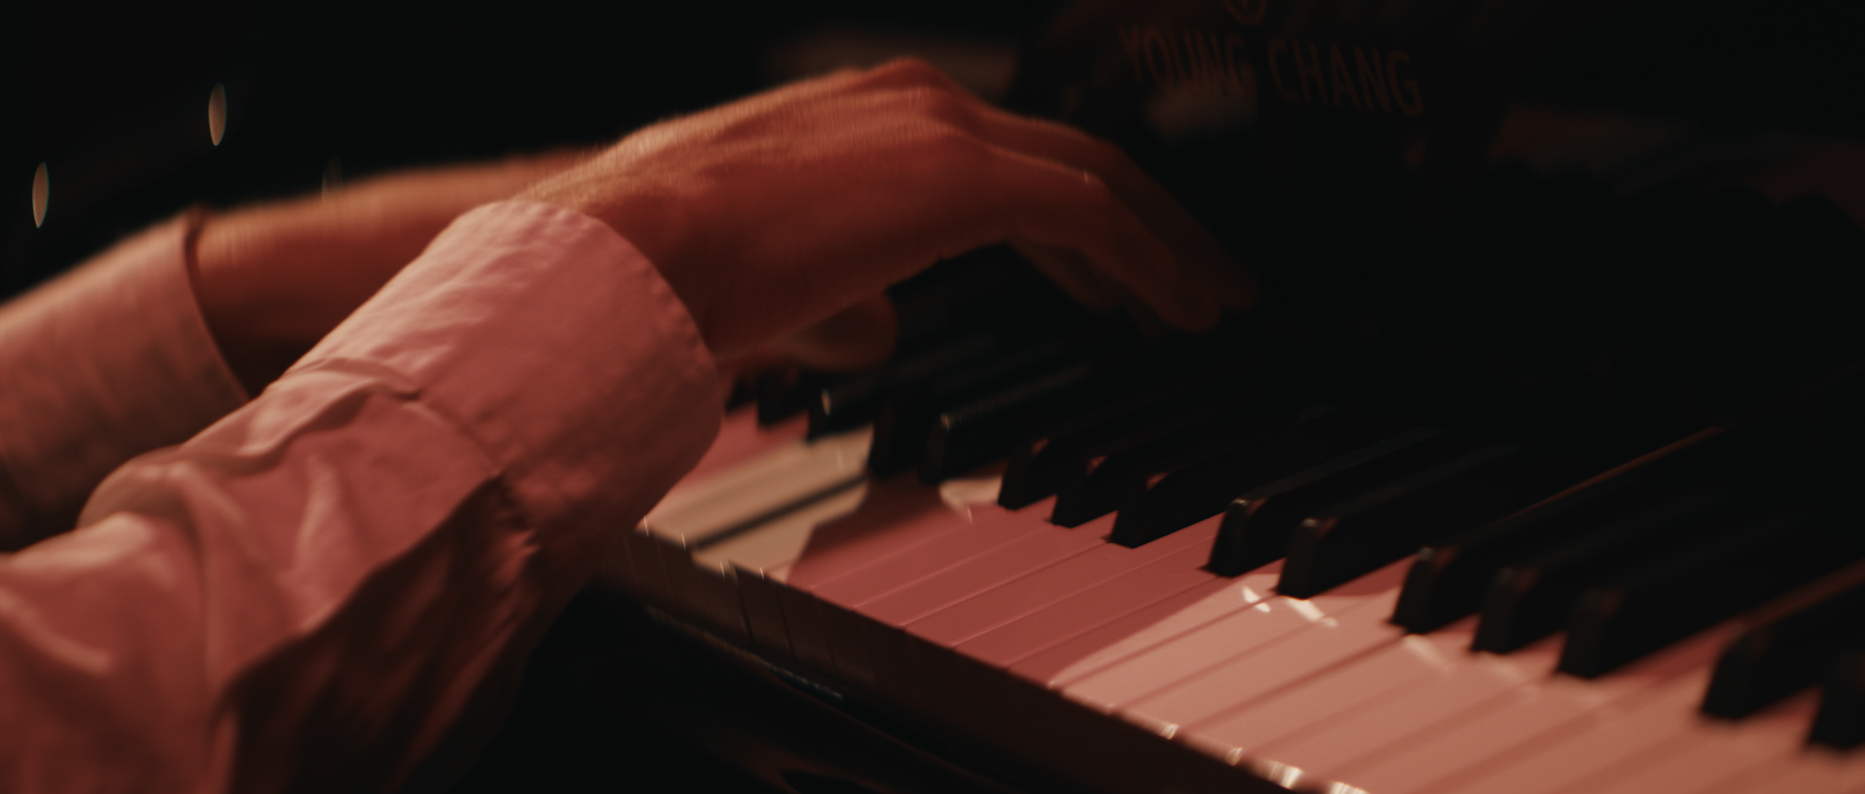 9-CCL_Gretchen_Piano Hands.JPG